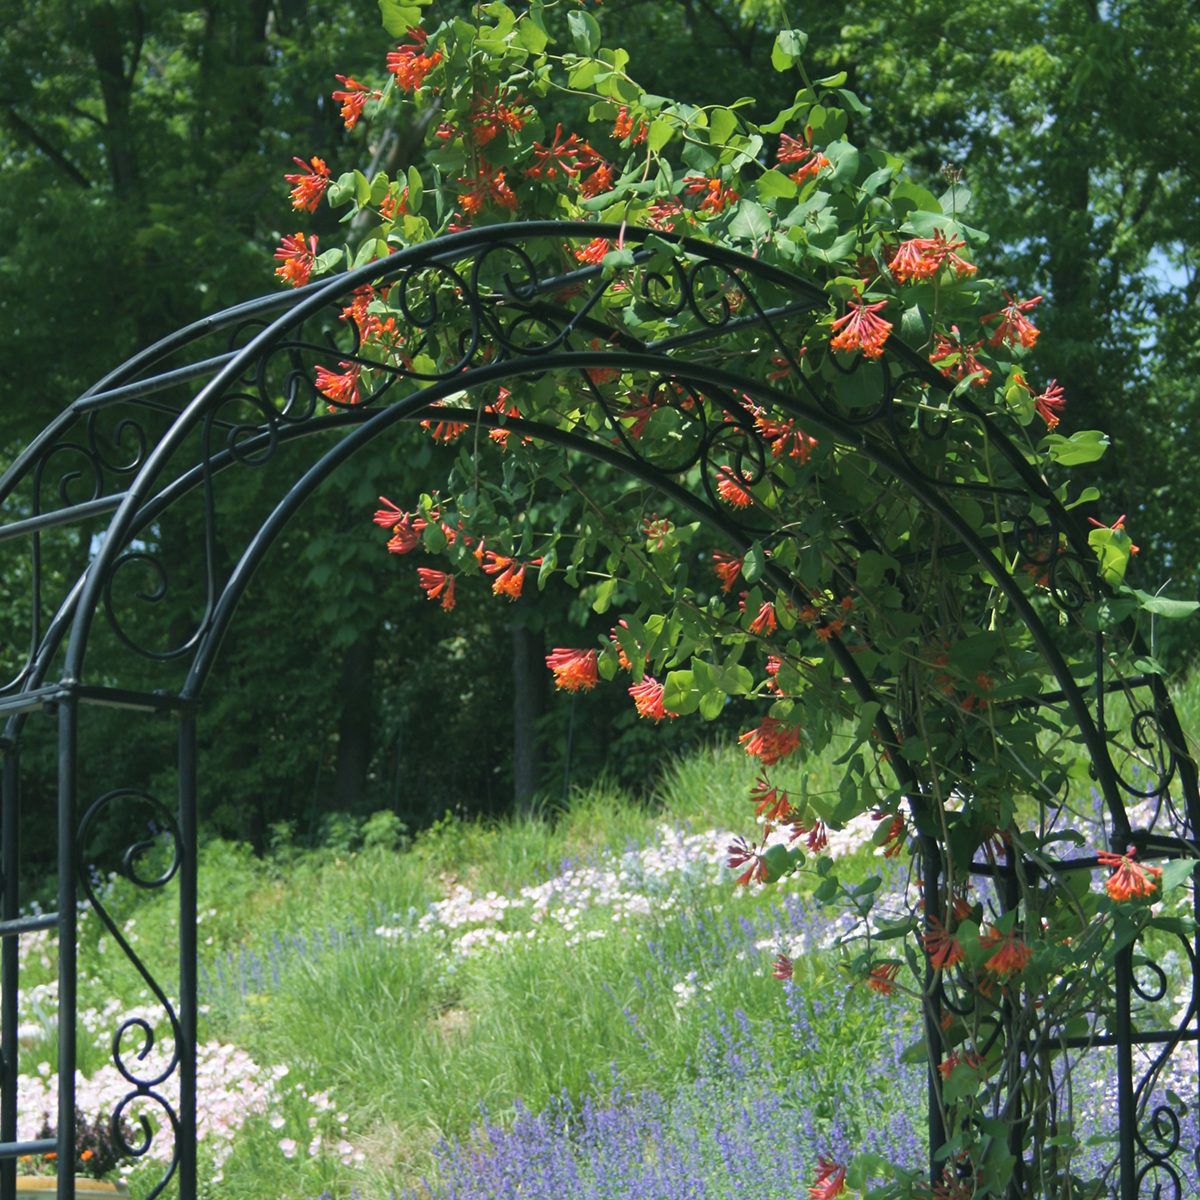 view through a black iron arbor draped with orange honeysuckle in early spring. View beyond is of wildflower meadow hillside in pink, purple and green. Very lush.